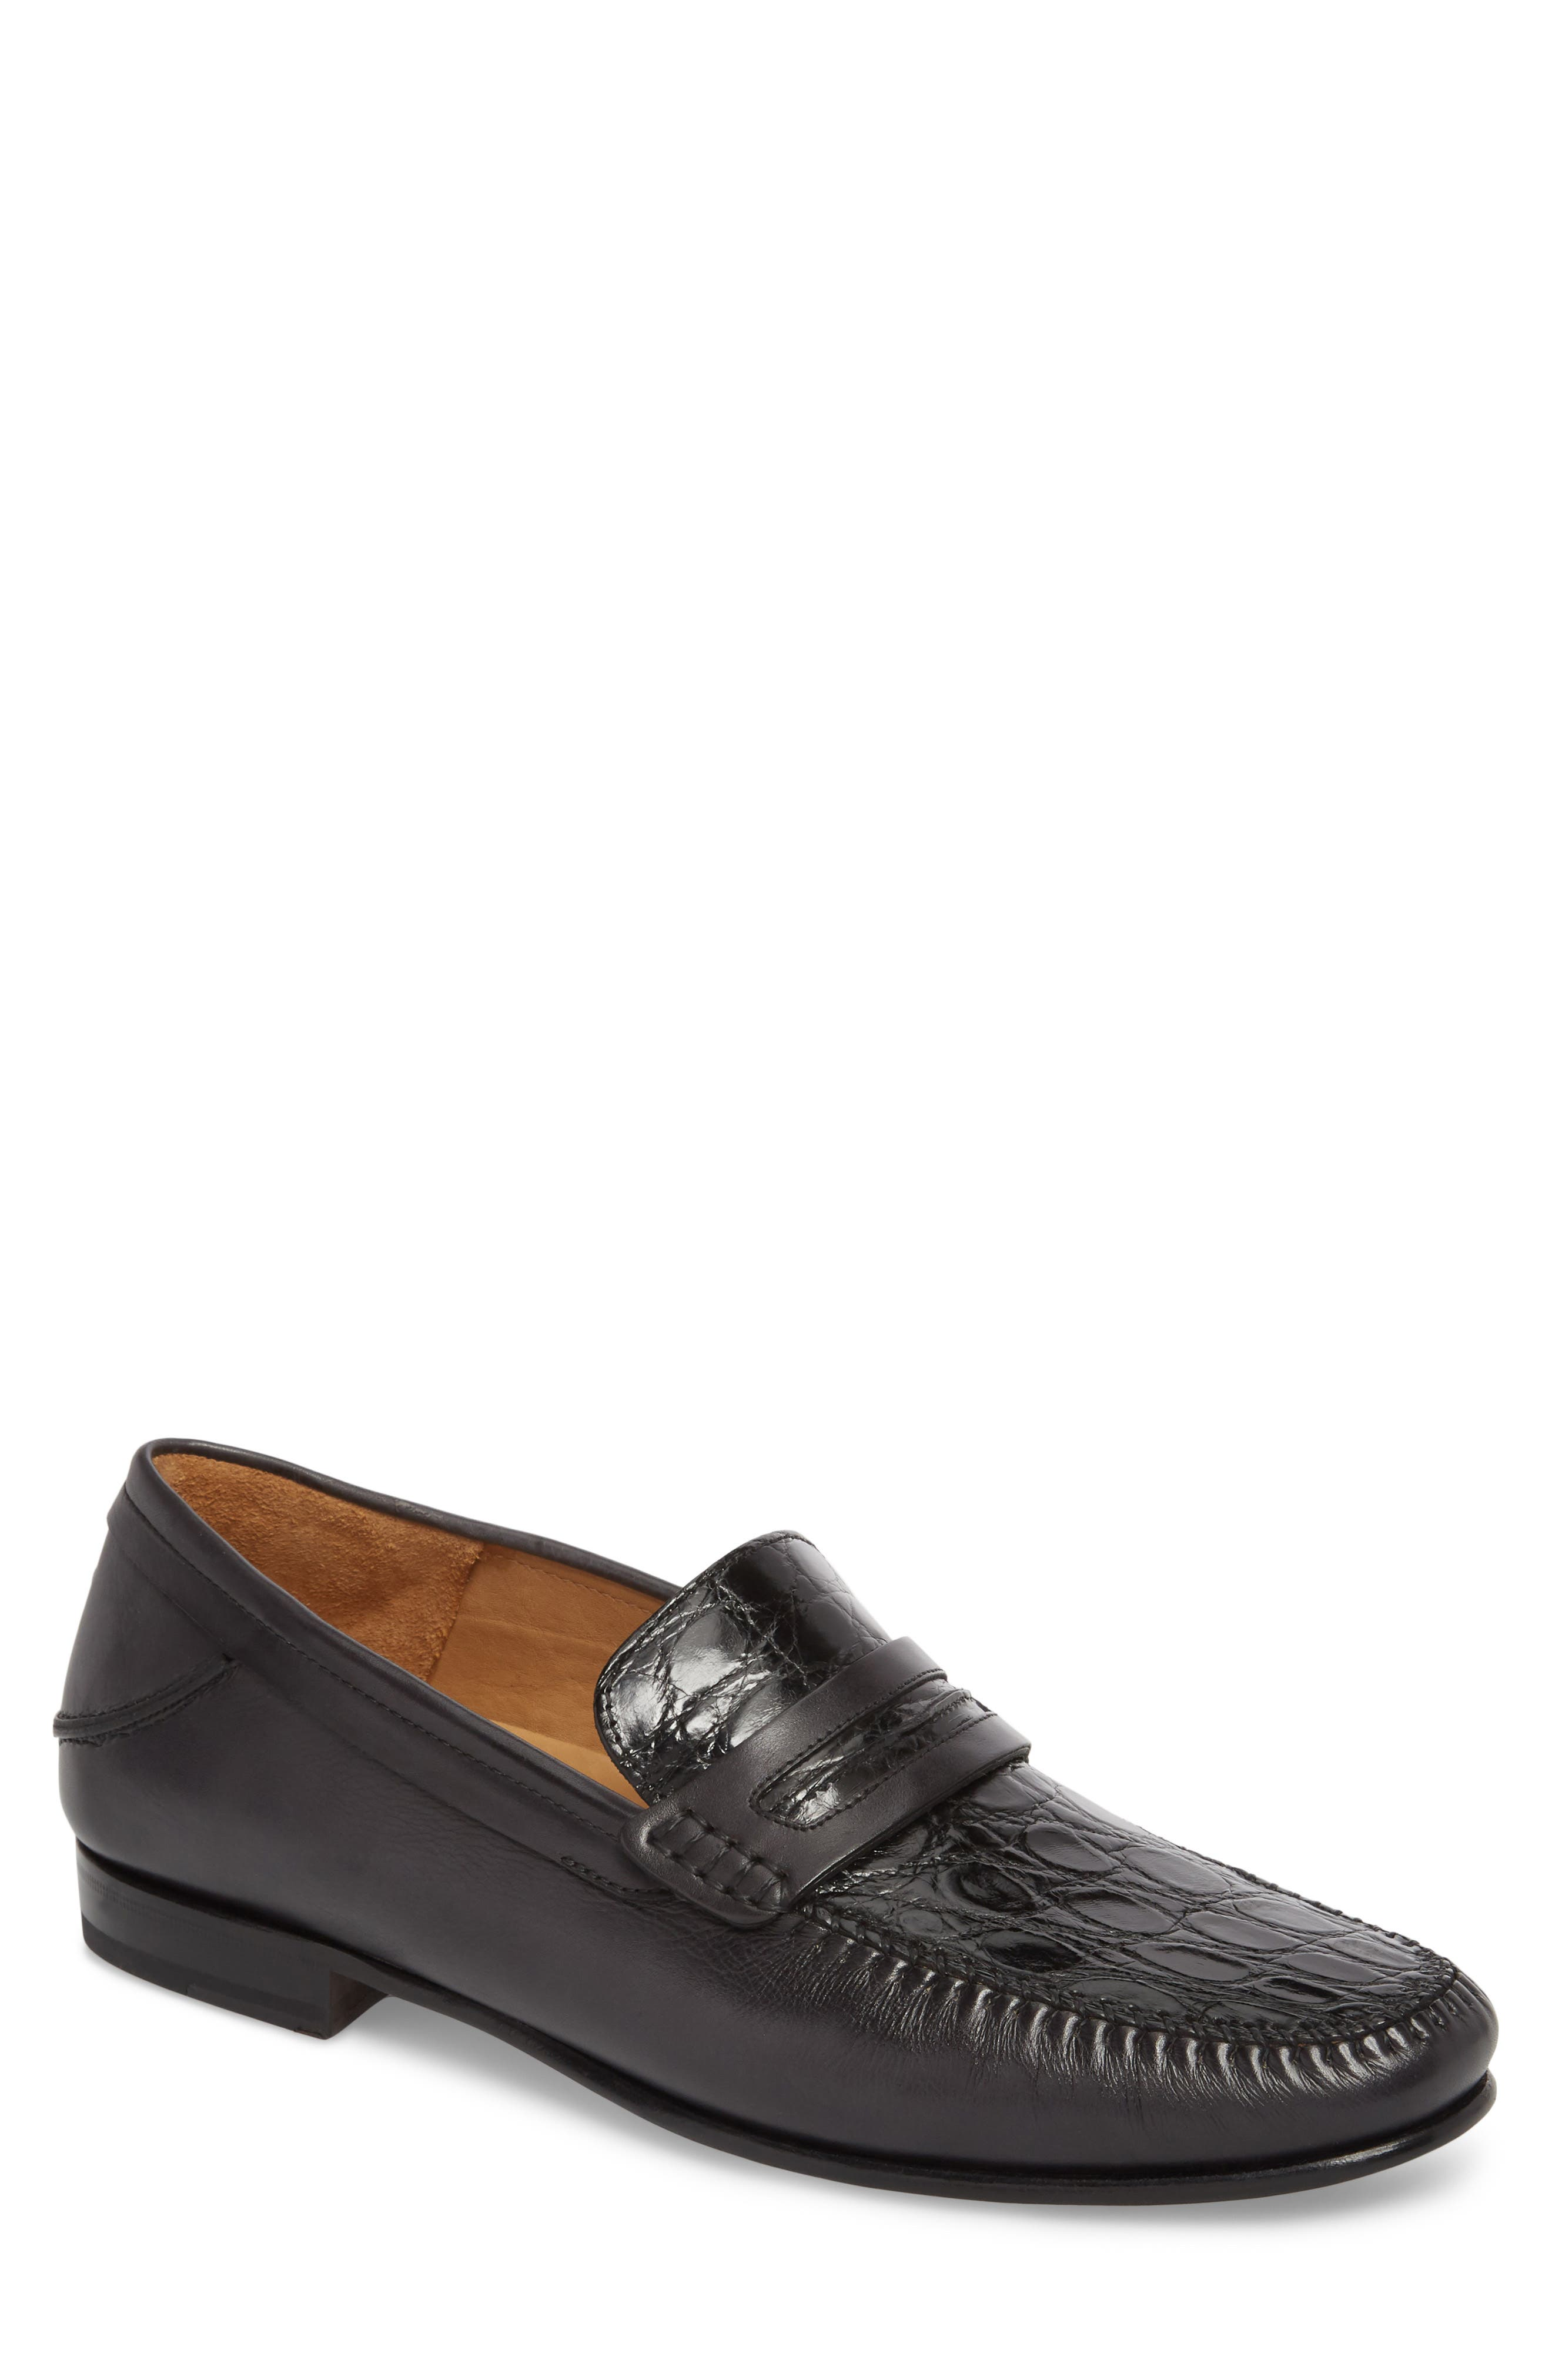 Kronos Moc Toe Penny Loafer,                         Main,                         color, BLACK LEATHER